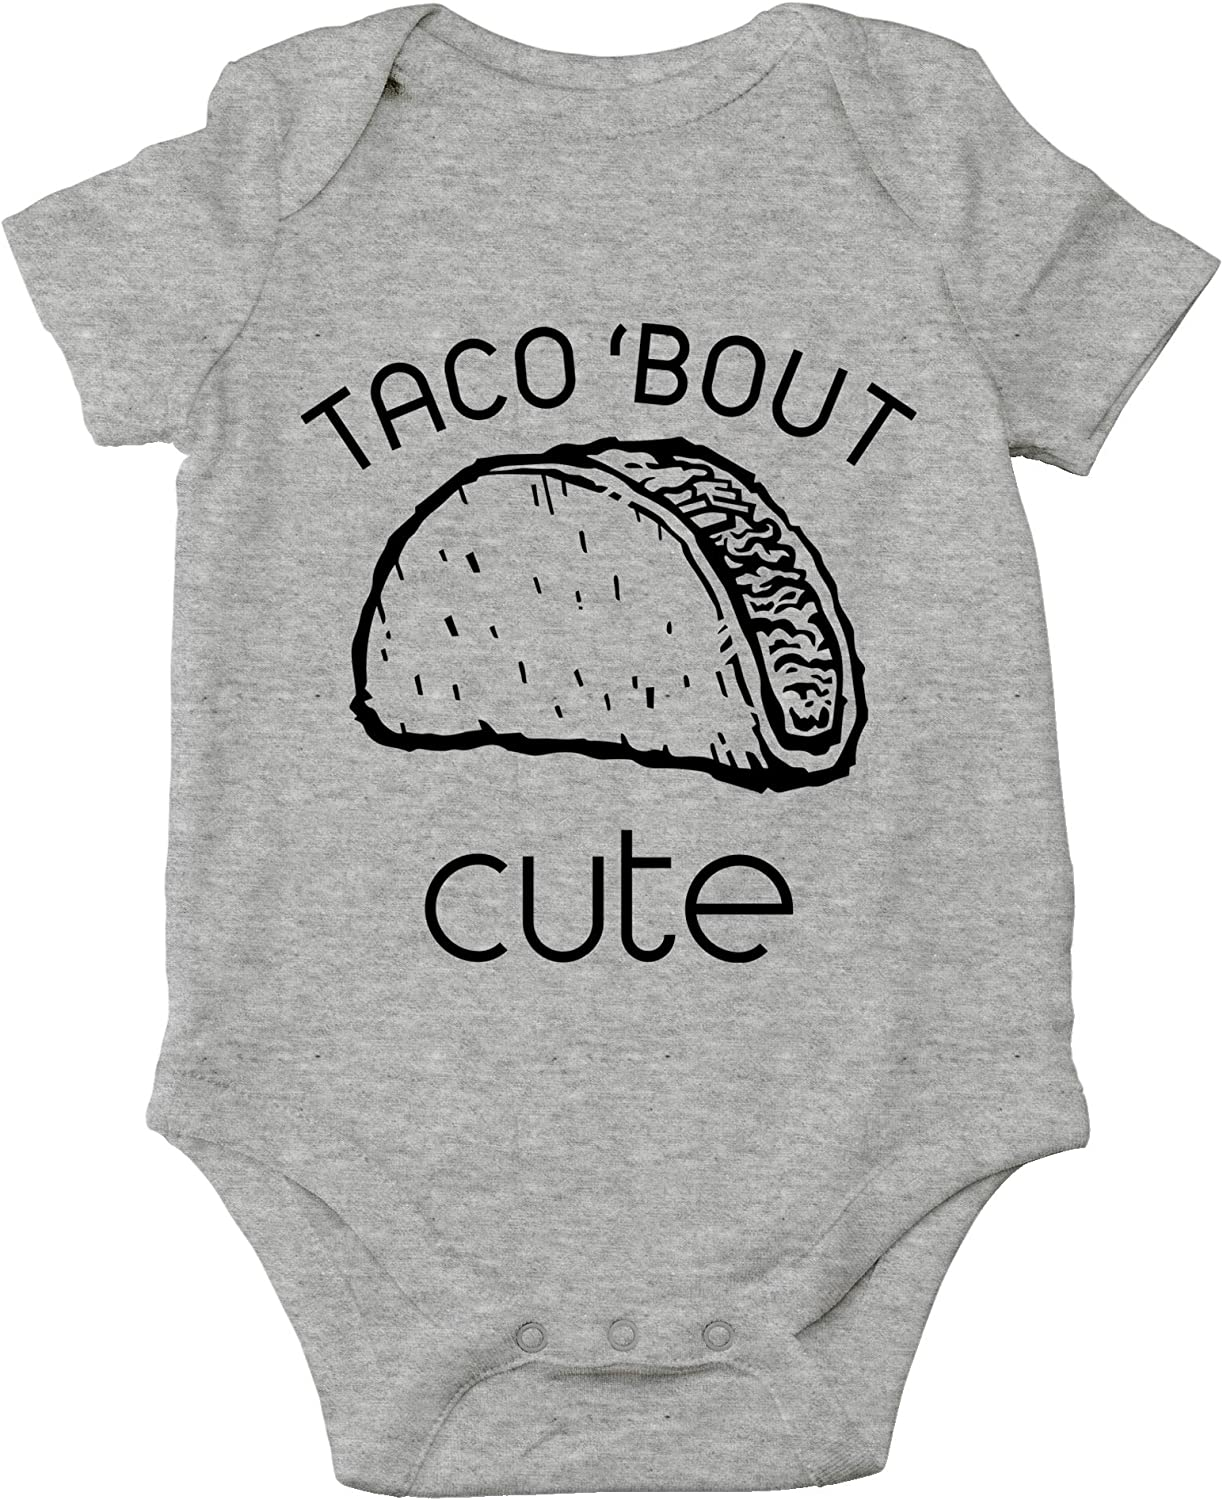 CBTwear Taco 'Bout Cute - Funny Mexican Food Lover Pun - Cute Infant One-Piece Baby Bodysuit